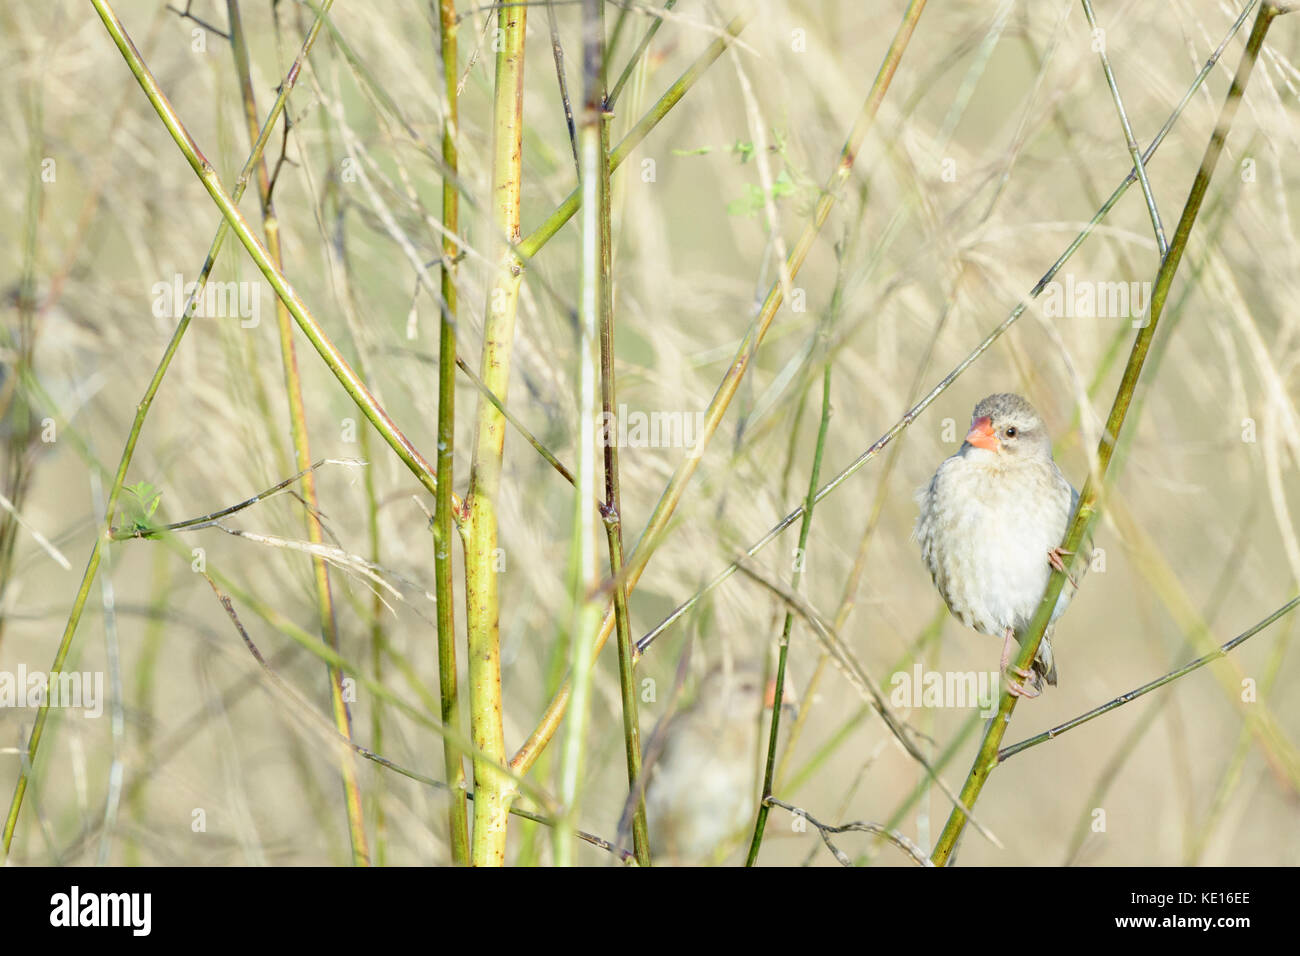 Red-billed quelea (Quelea quelea) perched in reed, Kruger natiobnal park, South Africa. - Stock Image